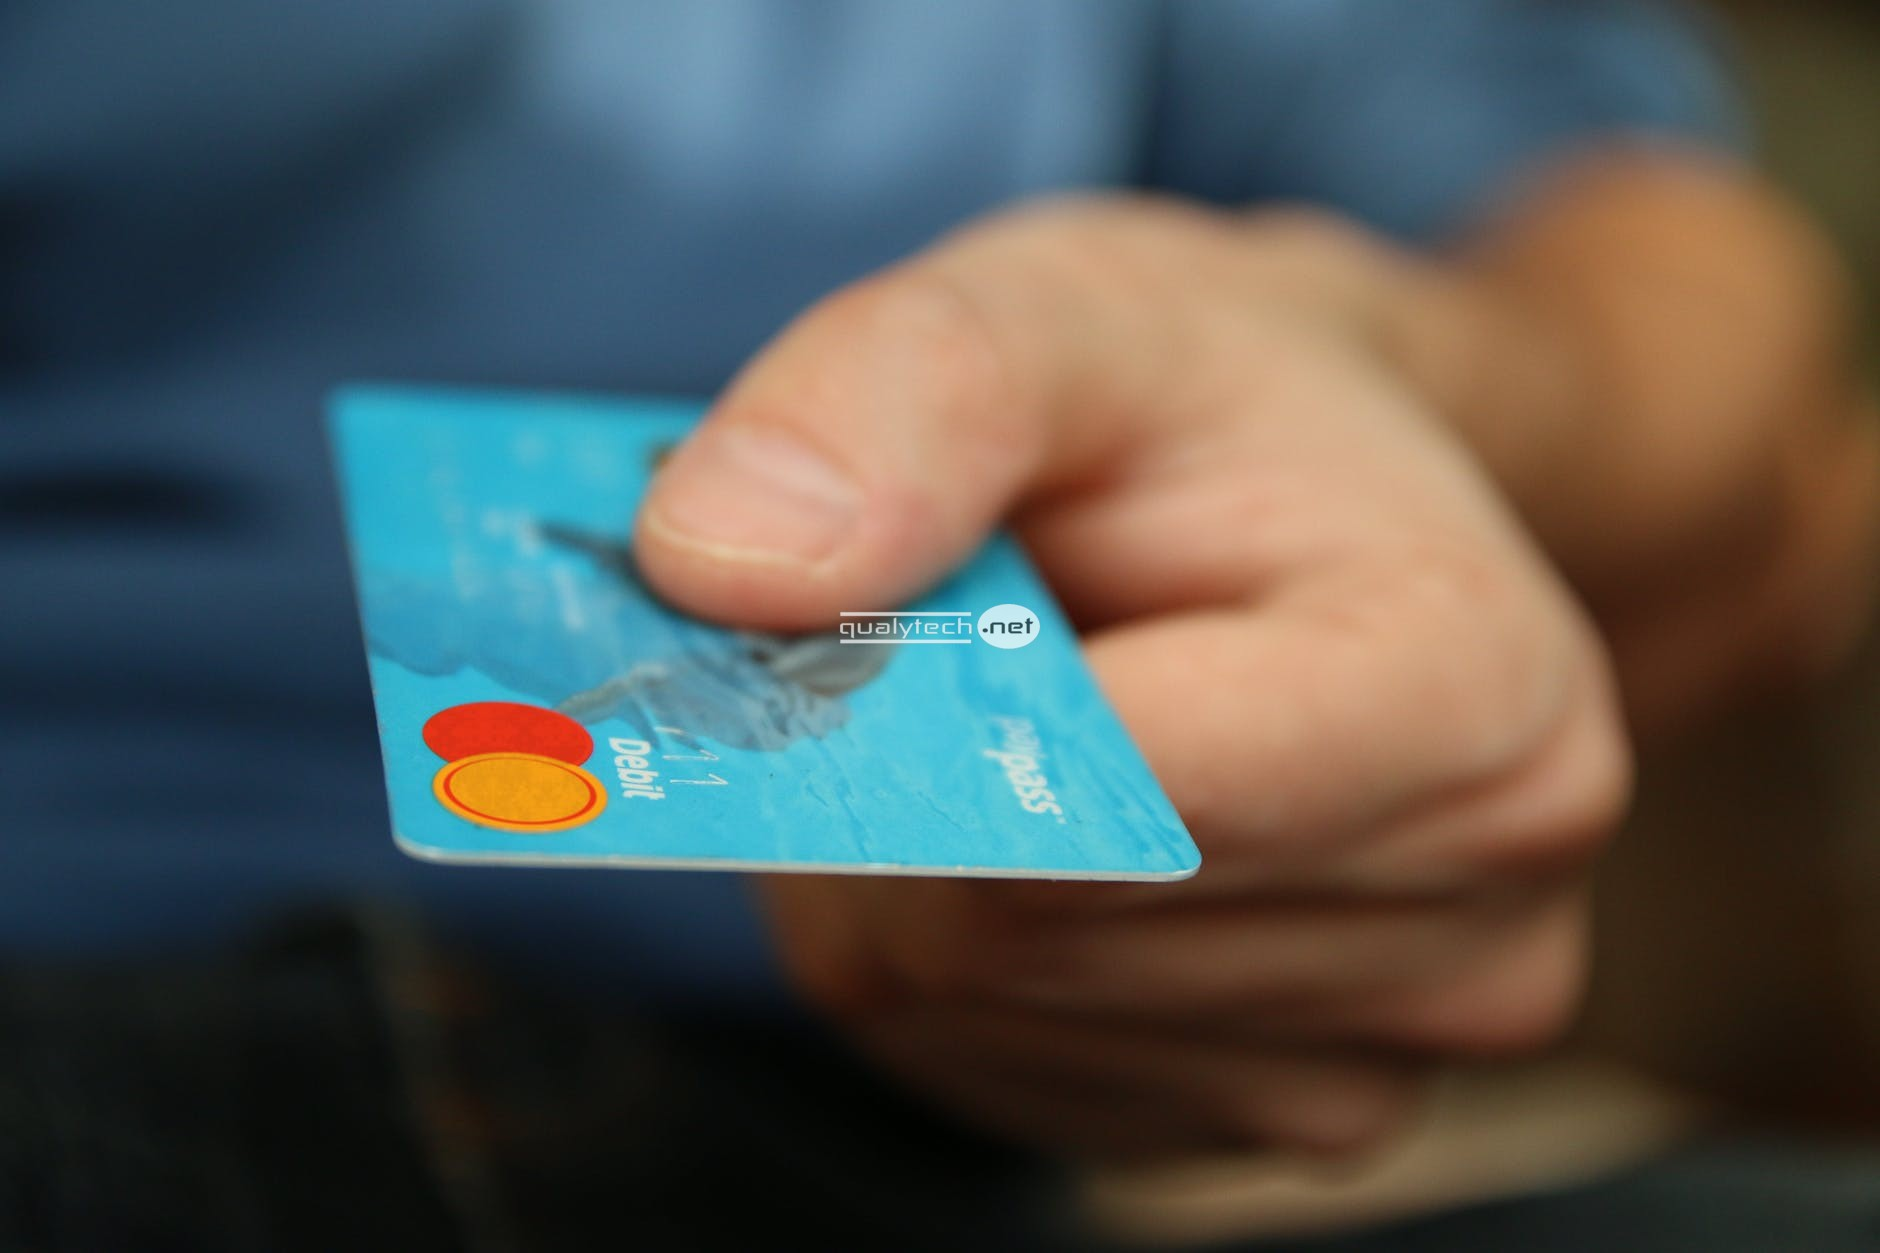 How to block a lost/stolen bank ATM card